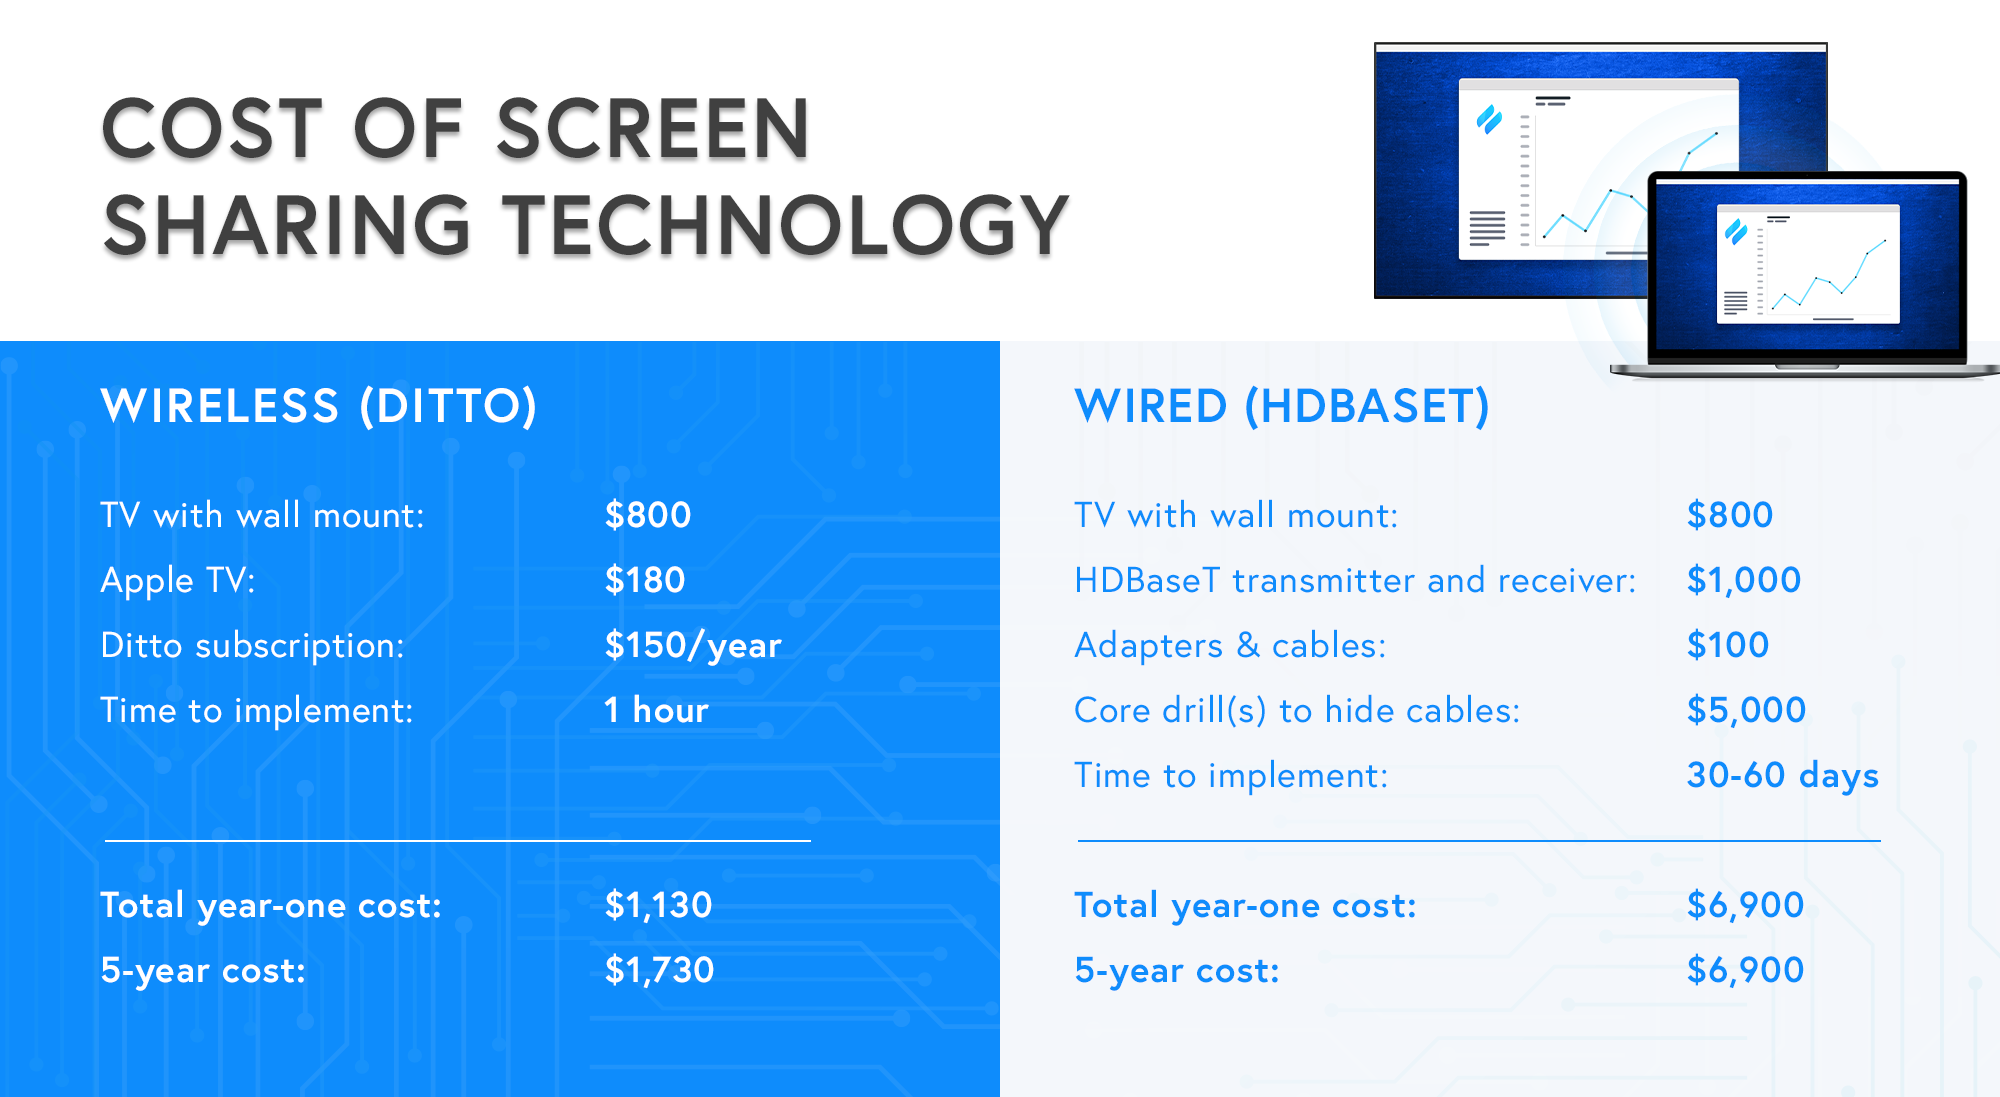 Cost of HDBaseT vs cost of wireless Ditto screen mirroring